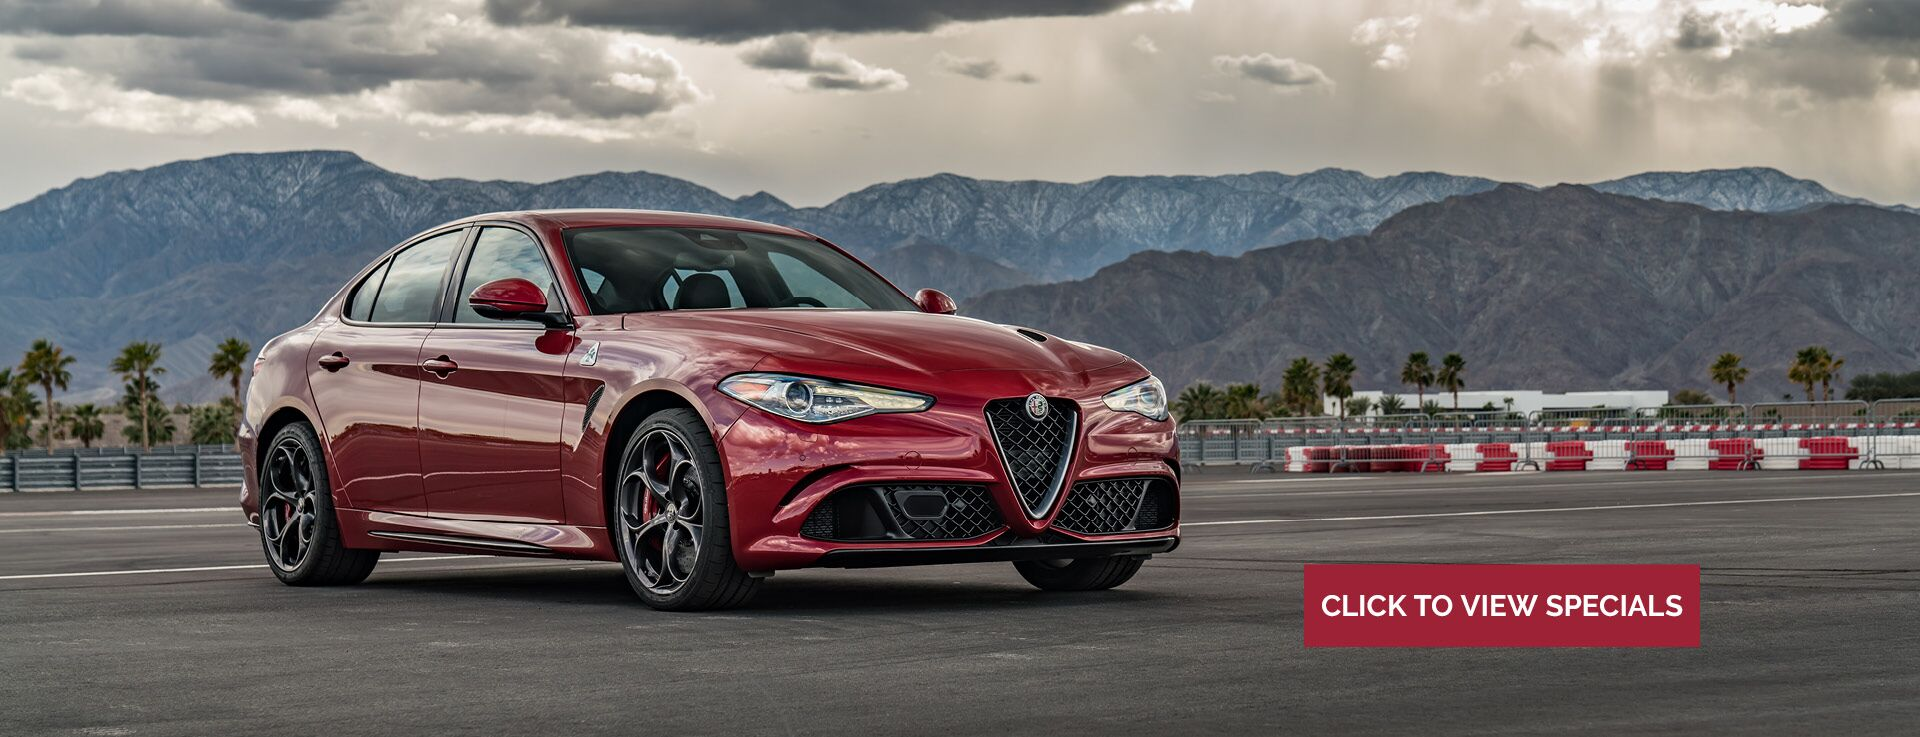 Alfa Romeo Lease Specials